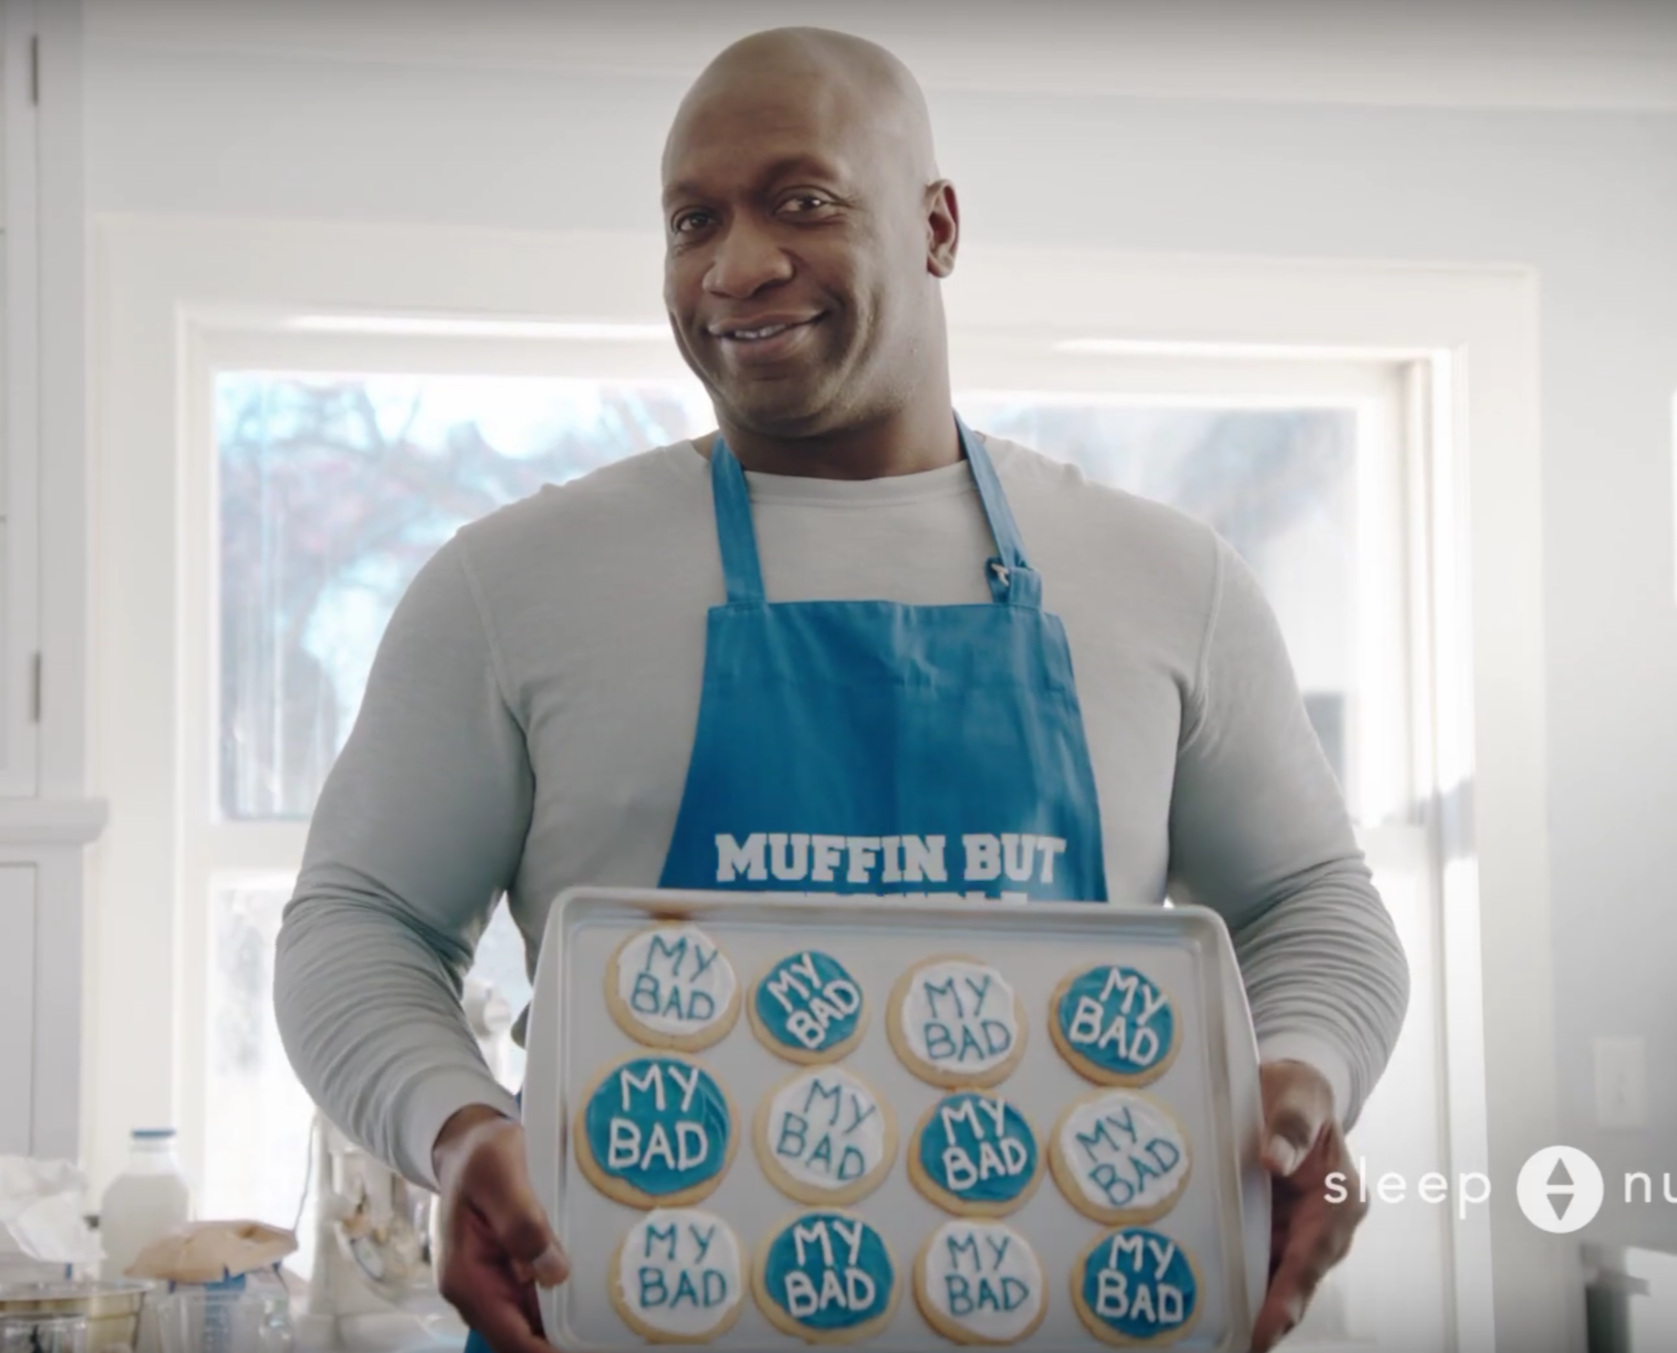 SUPER BOWL LIII - Griffin Archer throws their hat in the Super Bowl ring with a spot starring trash-talking legend, John Randle. The Sleep Number commercial landed at number 12 of 53 Super Bowl spots. Read more.https://www.sportsnet.ca/football/nfl/super-bowl-liii-comprehensive-ranking-top-53-commercials/?fbclid=IwAR0eWgw5L41oRAalowIduHuXDAtHZhrUNUVwrdfXY1pYoKMxk4_iEg3yd2w